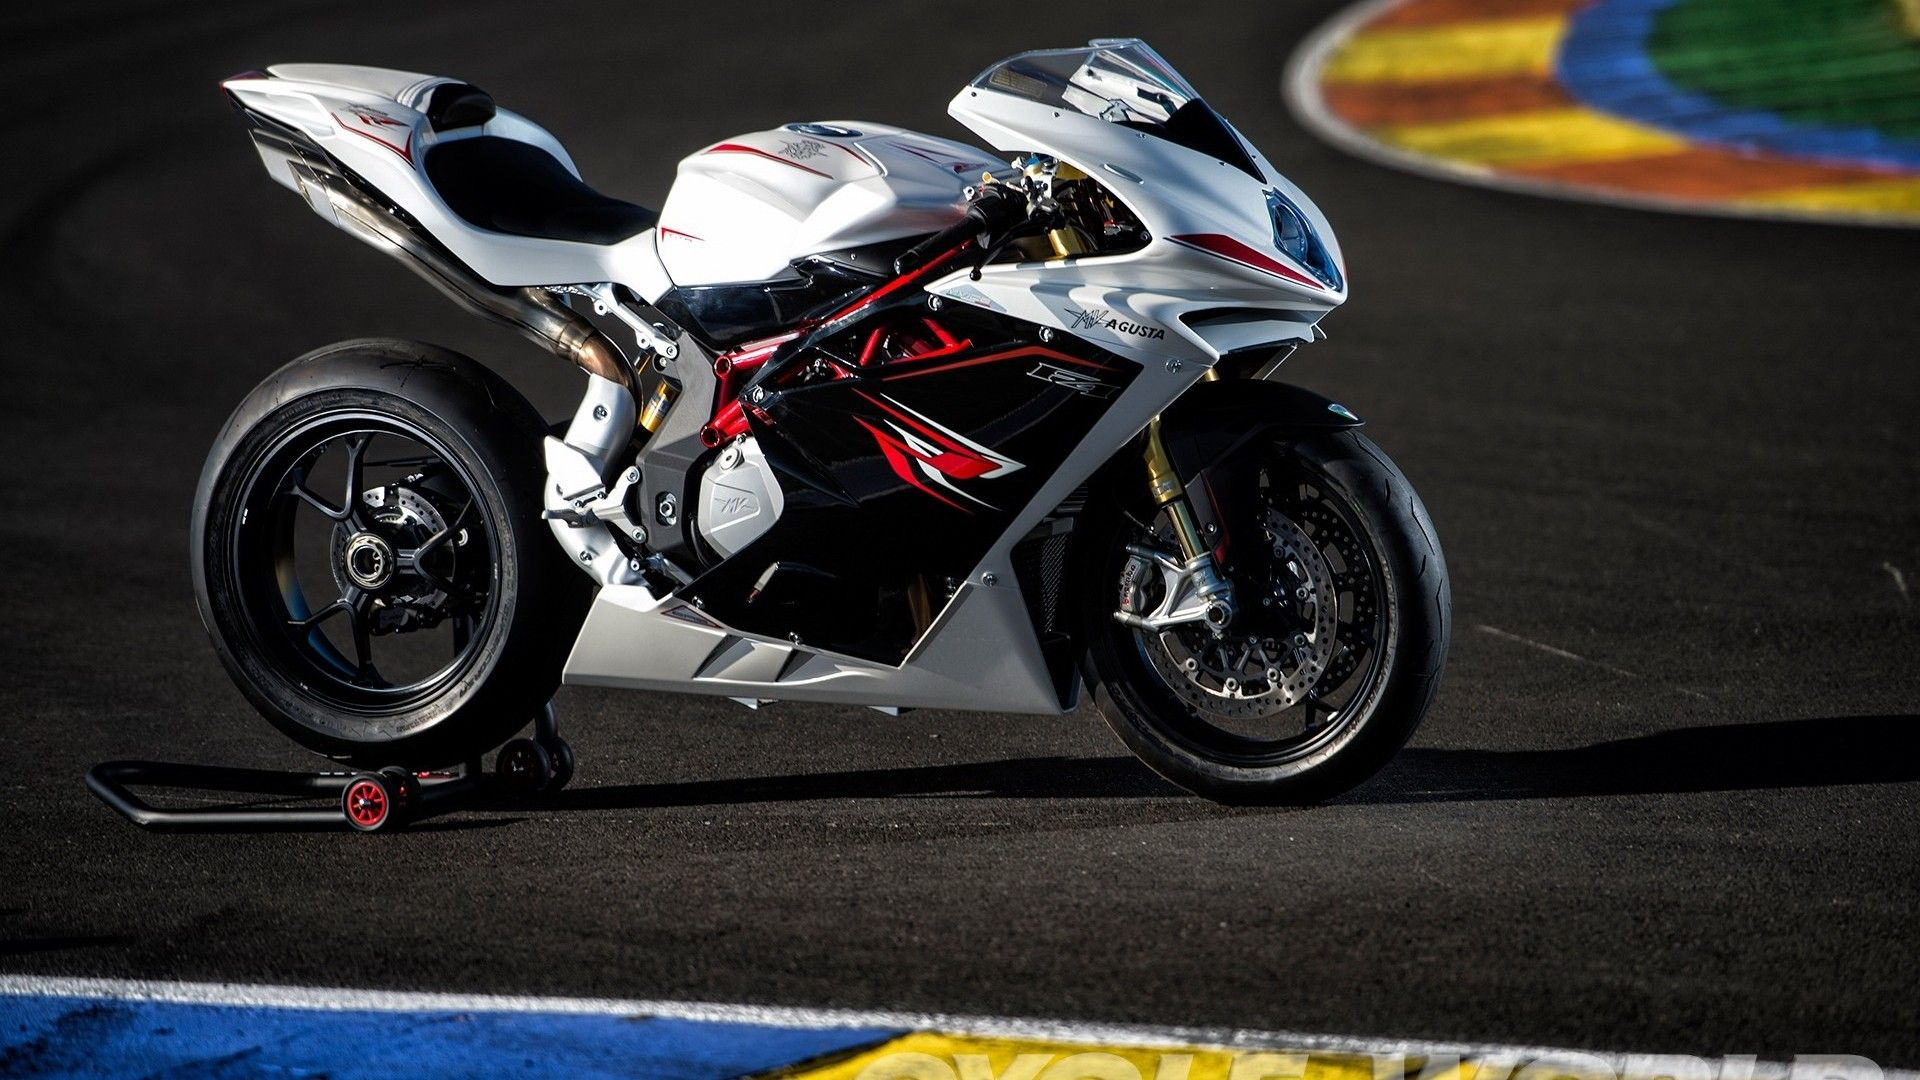 Sport Bikes Wallpapers For Android: Top Free Sportbike Backgrounds